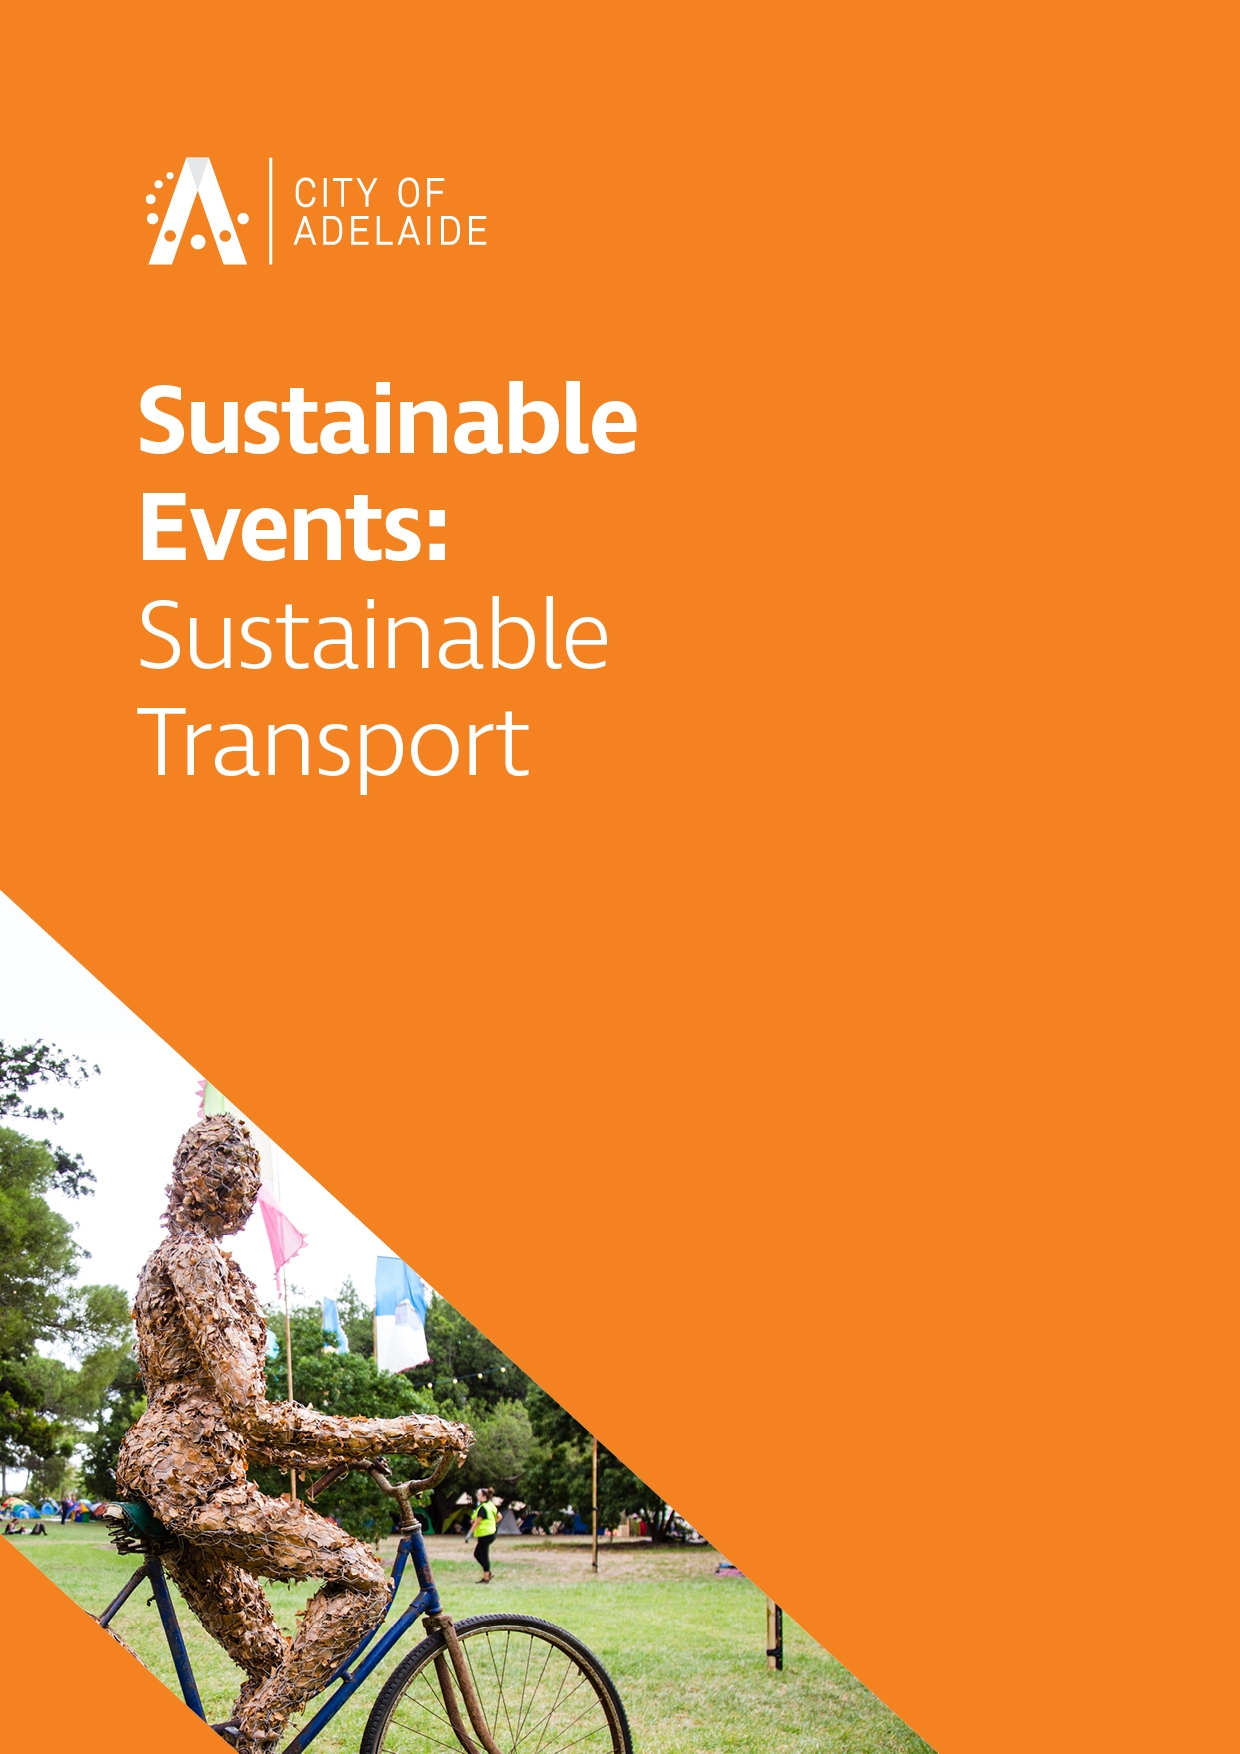 Thumbnail sustainable events checklists transport